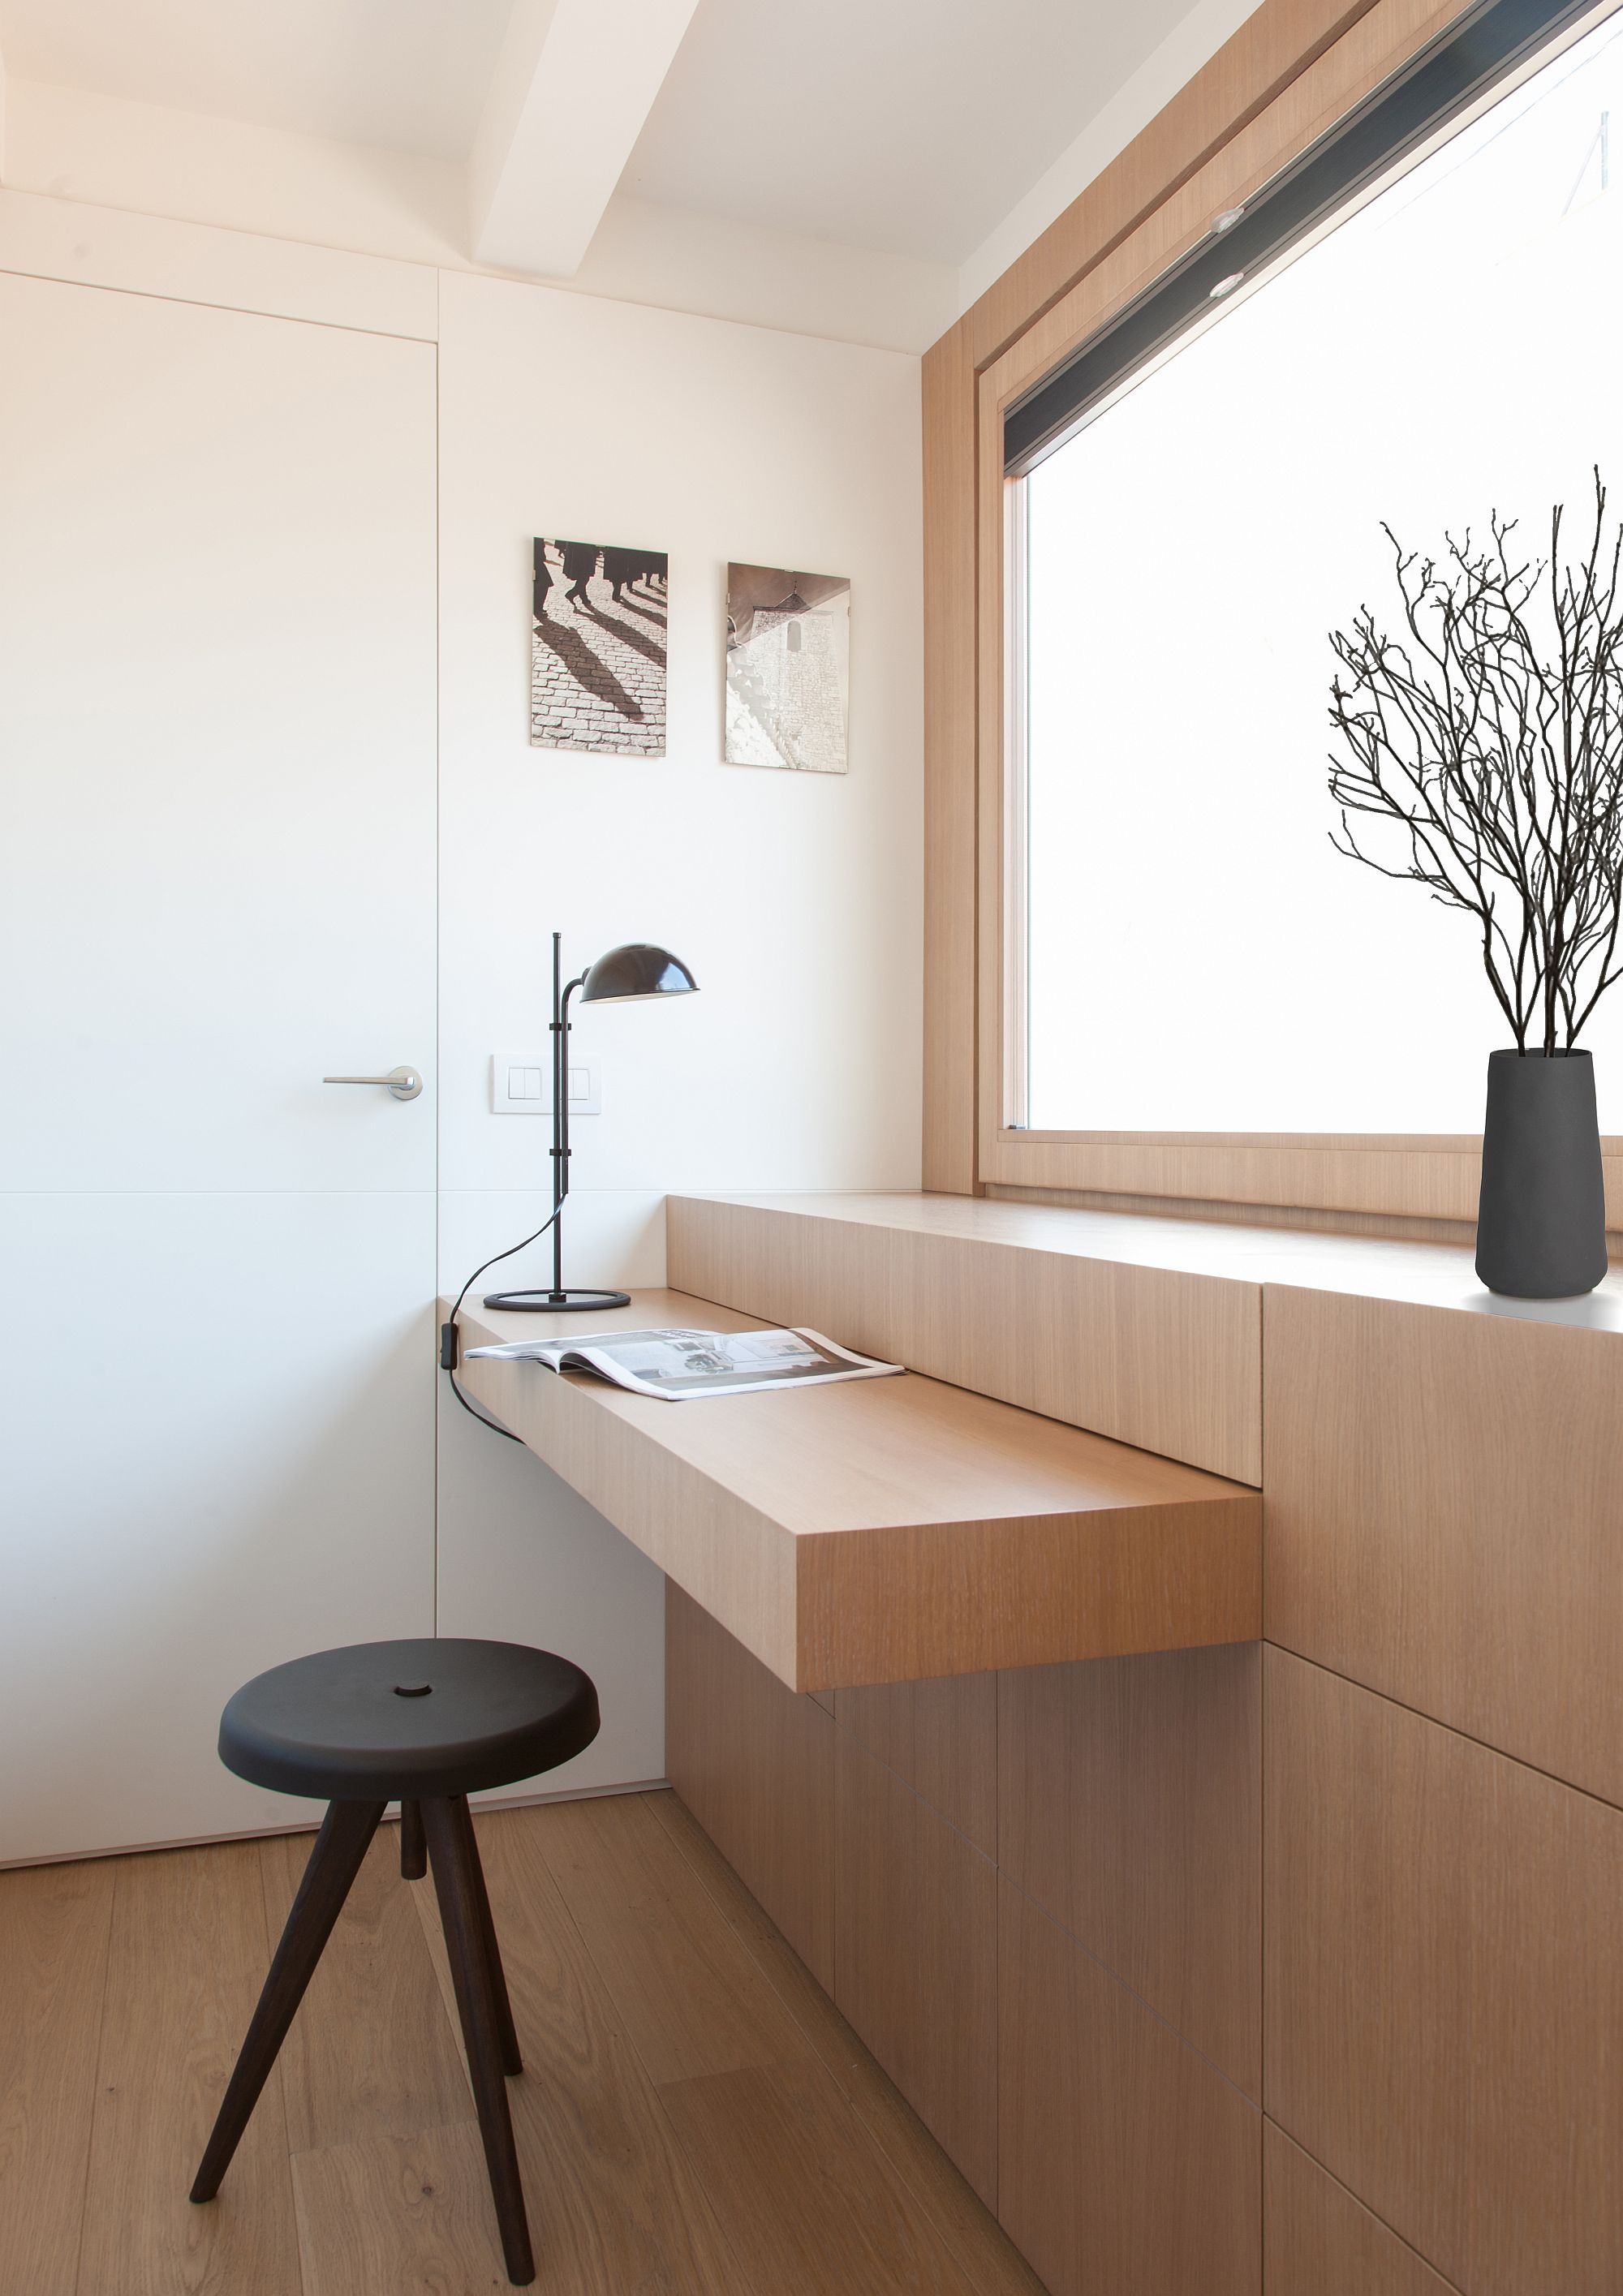 Custom-foldable-tables-and-wall-mounted-additions-inside-the-home